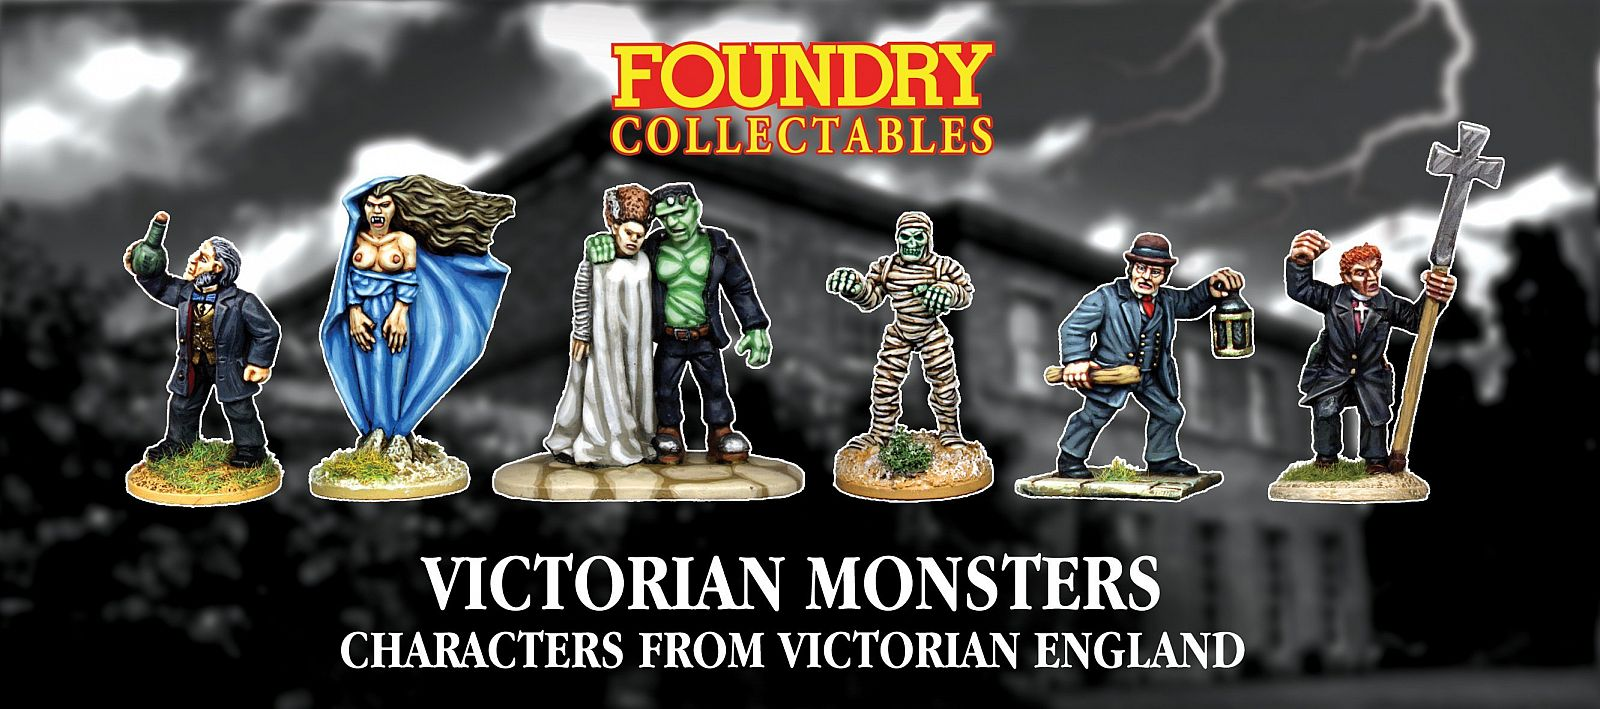 Victorian Monsters